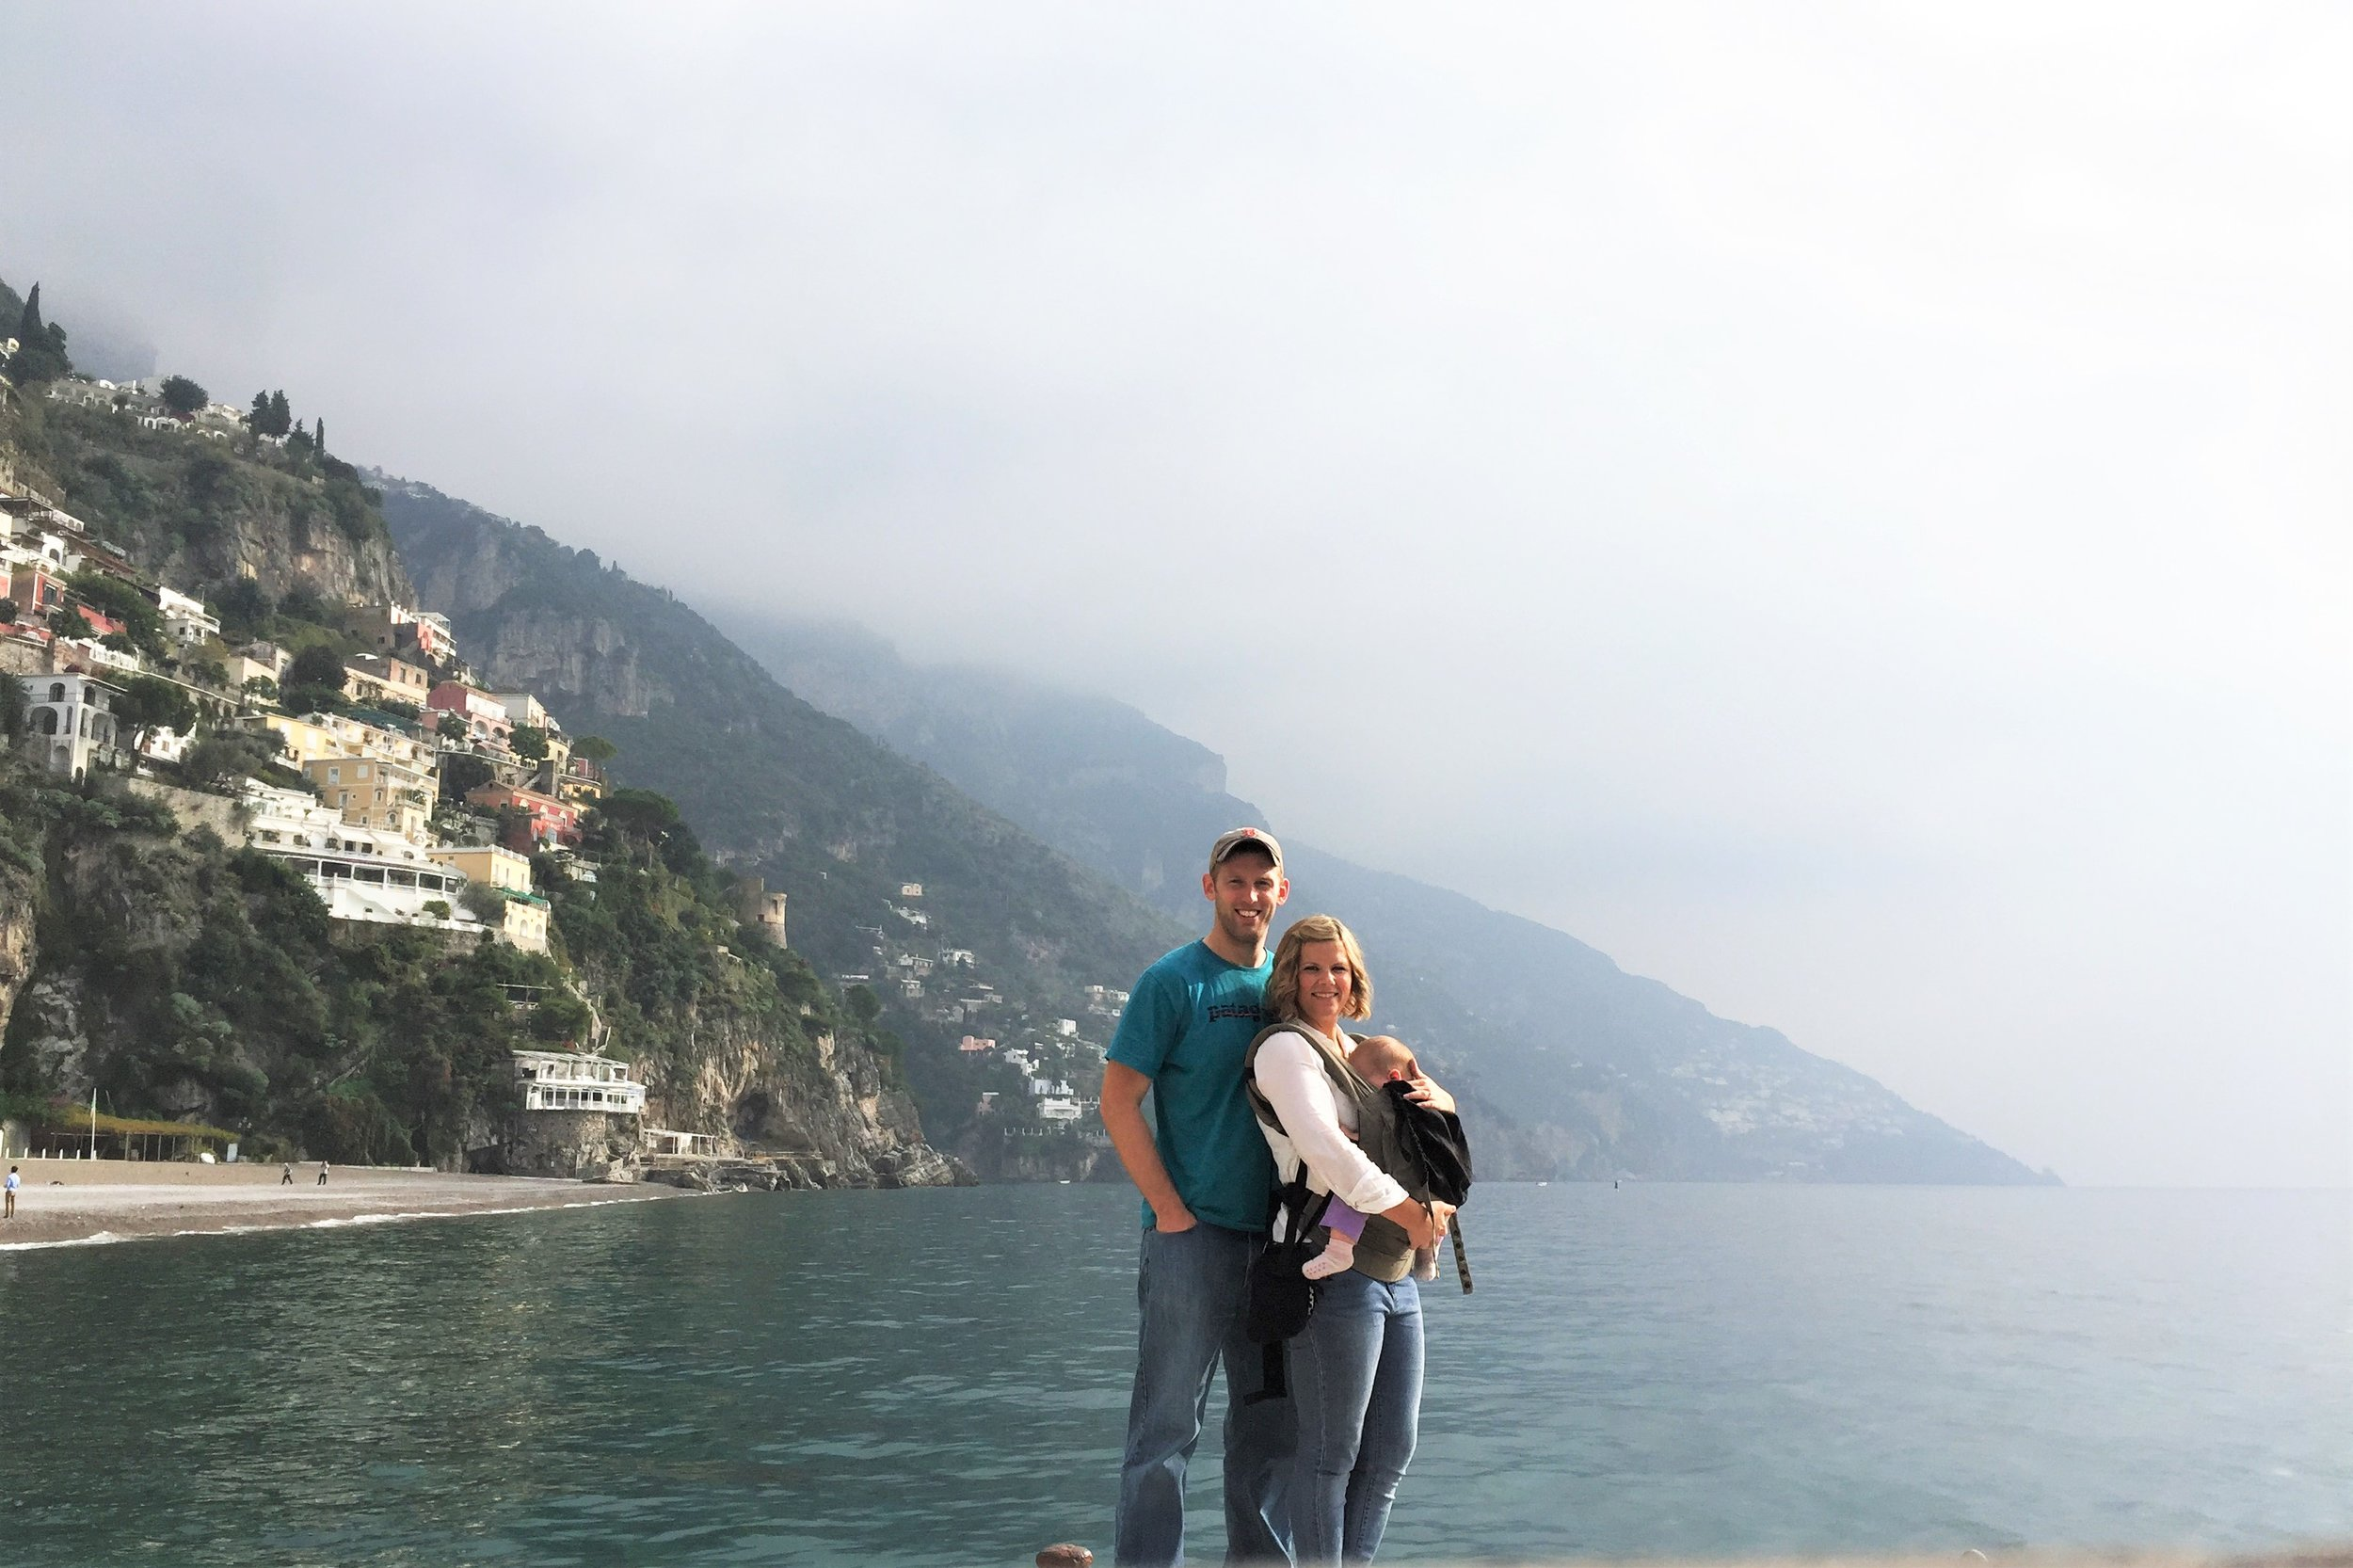 Amalfi Coast November 2015 (the beaches were empty)